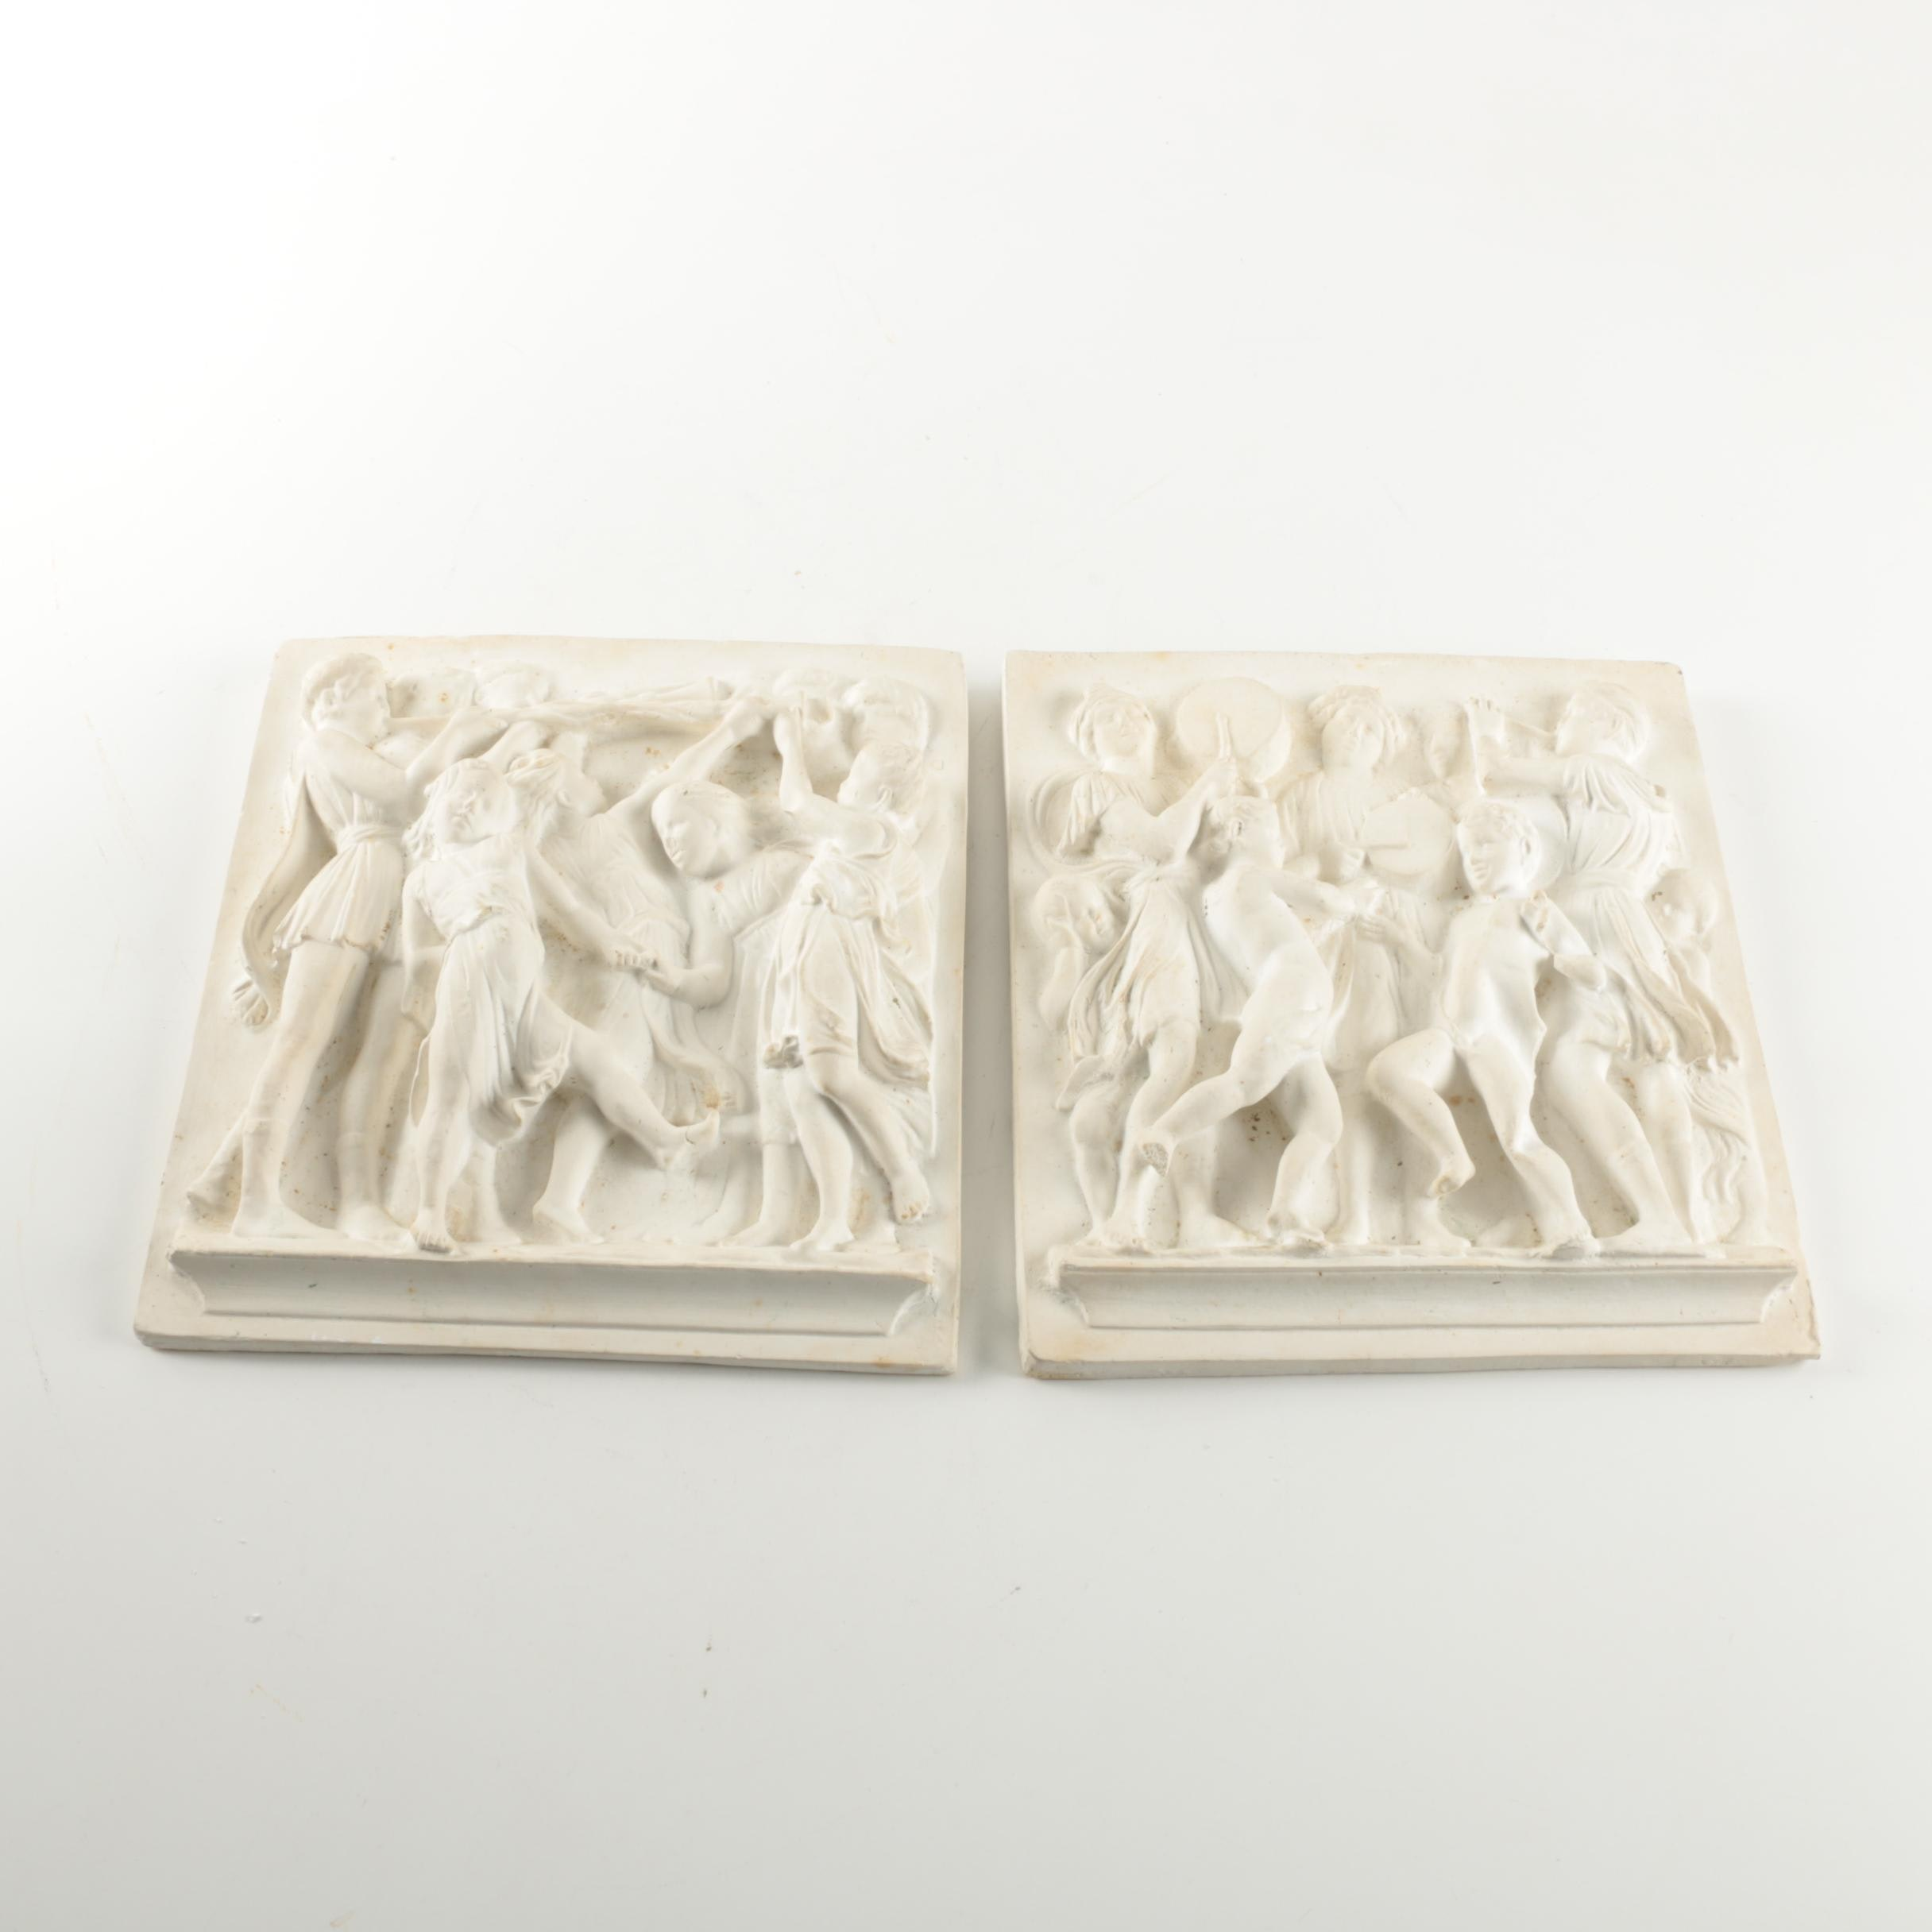 Two-Piece Relief Ceramic Wall Hangings